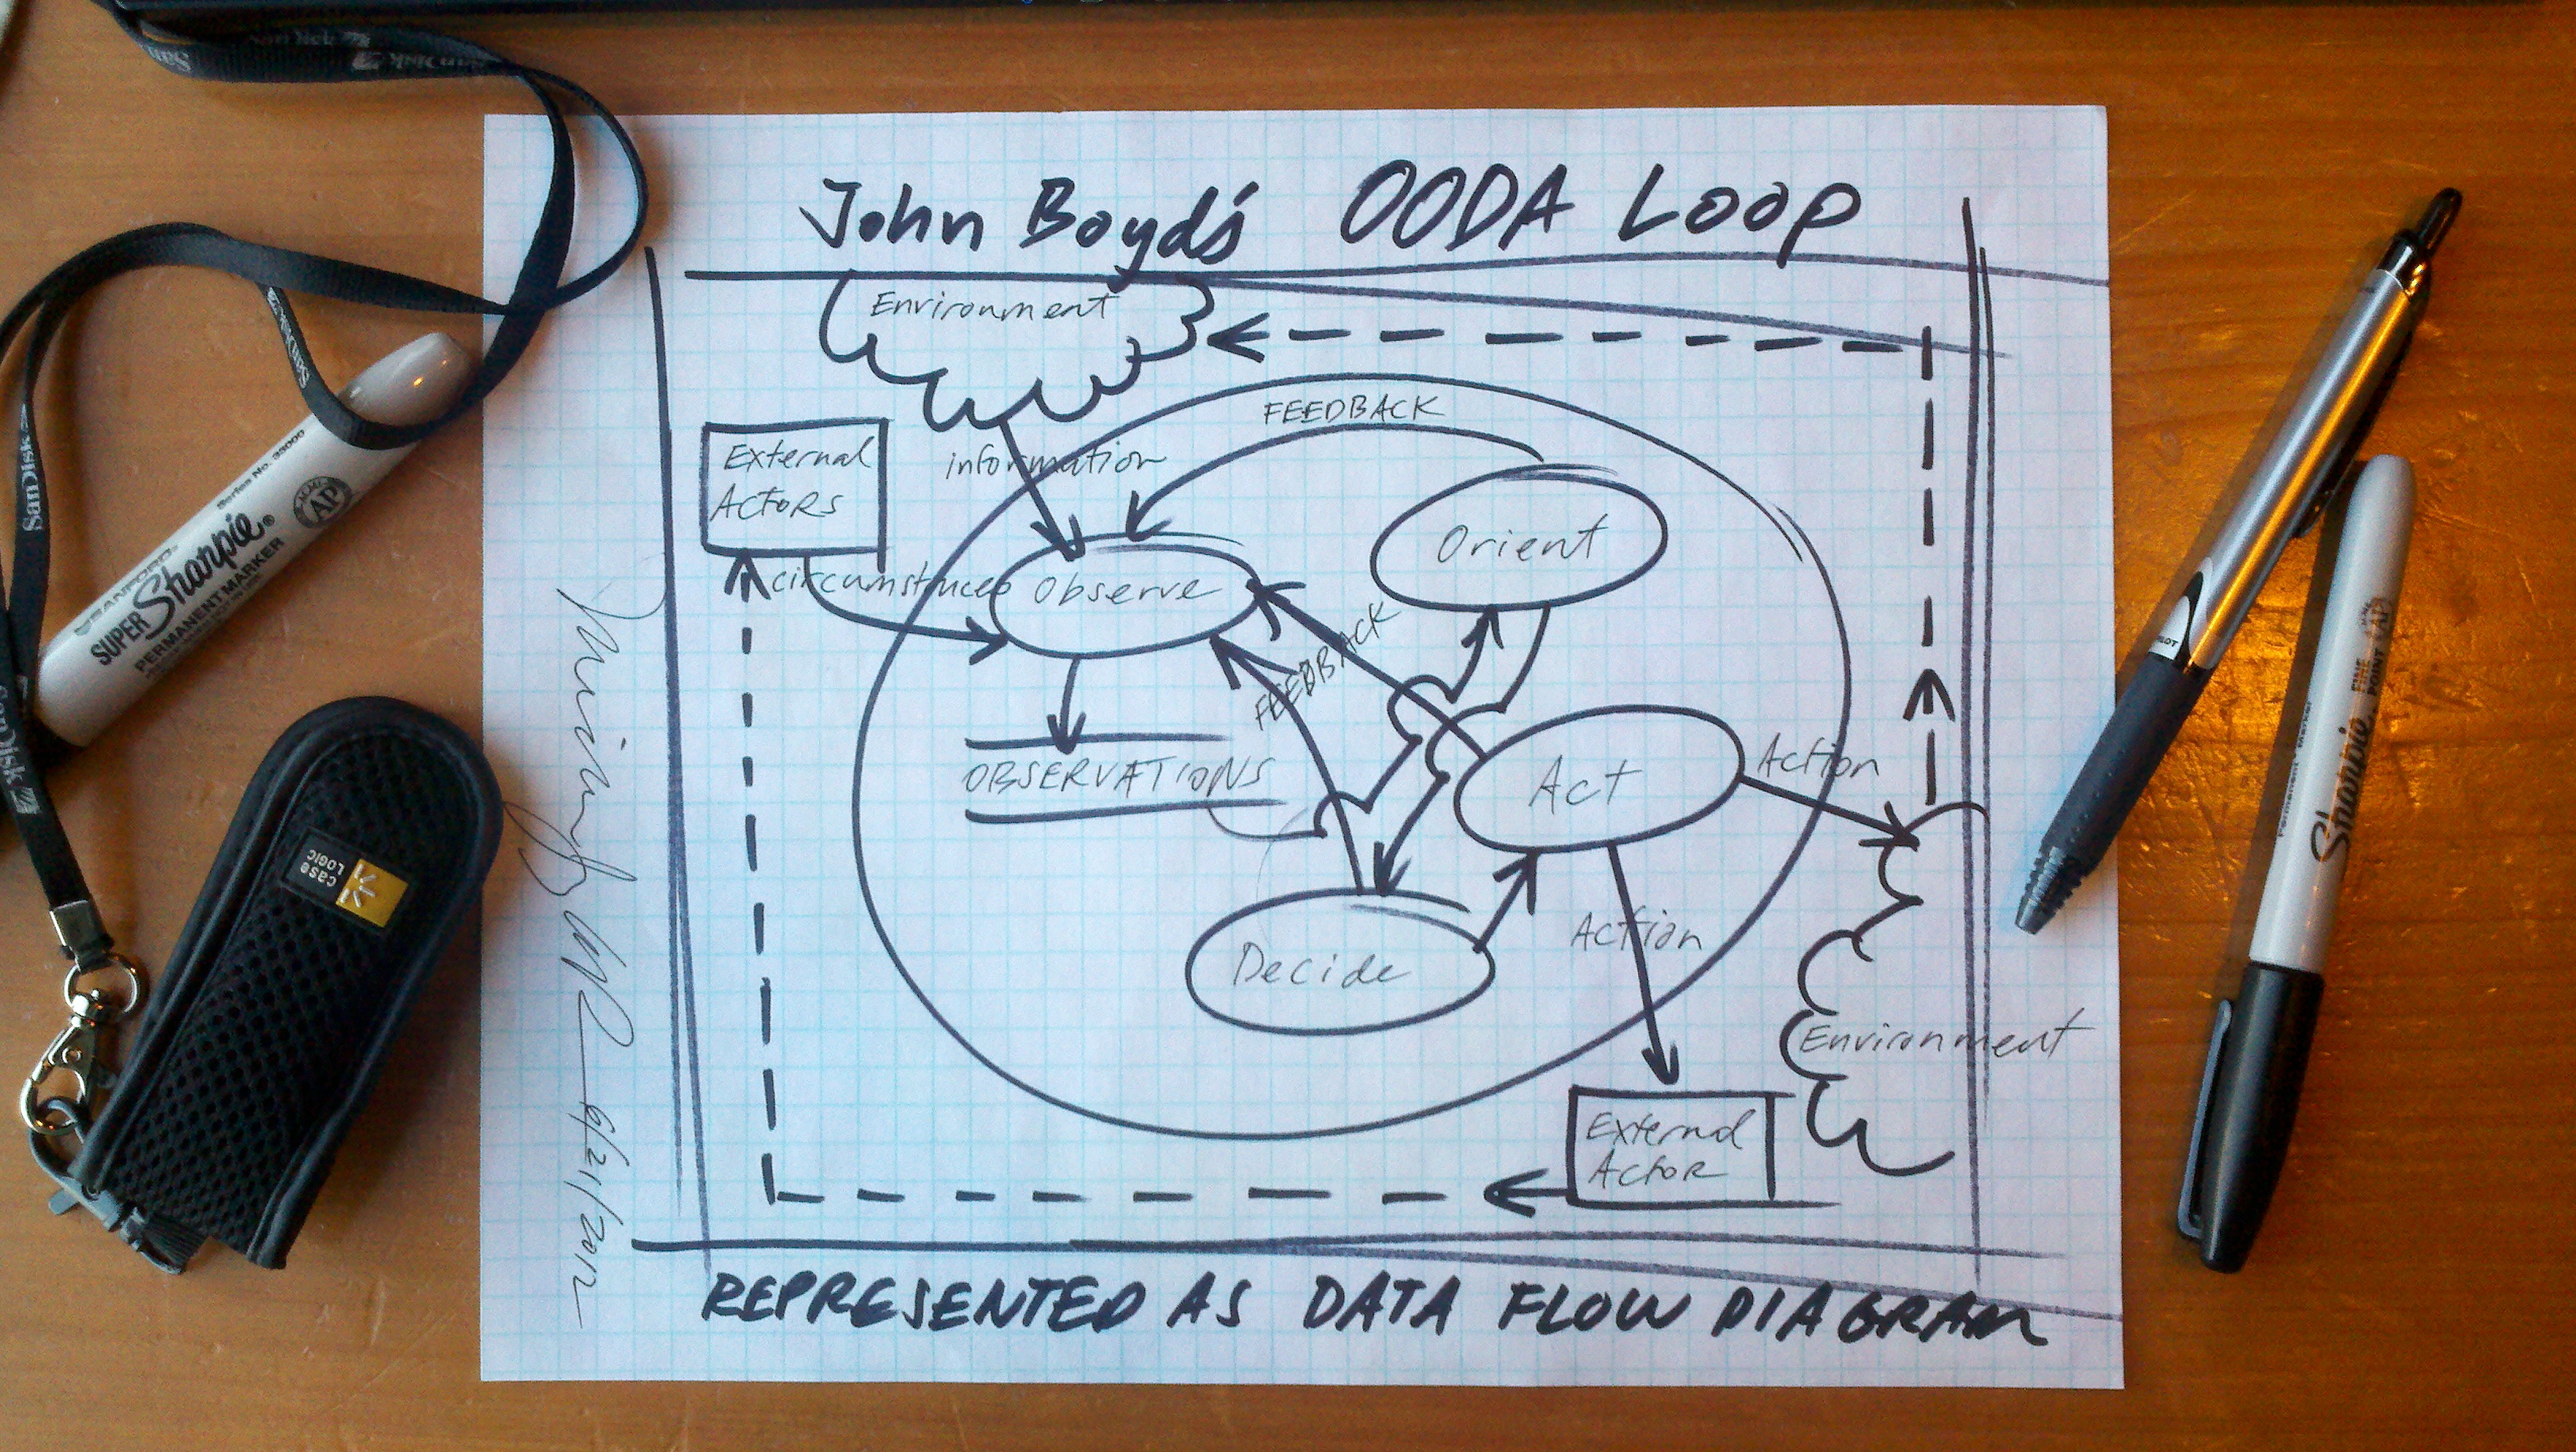 John Boyd's OODA Loop as Data Flow Diagram by Michael LaRue